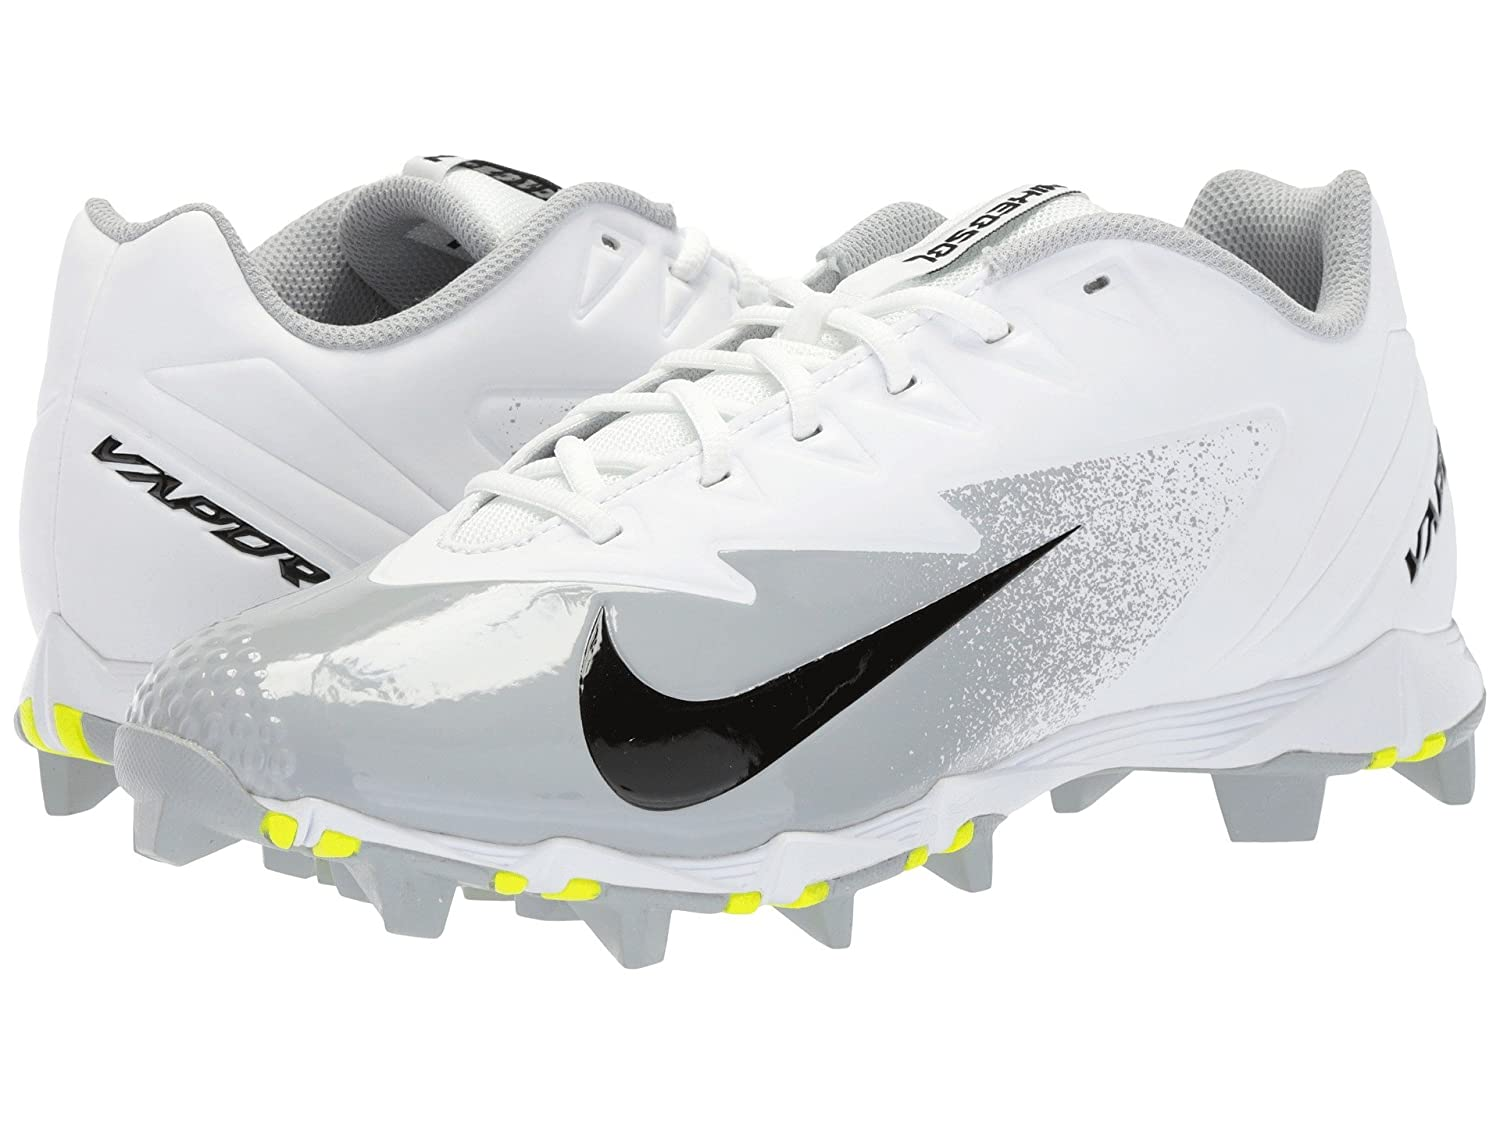 (ナイキ) NIKE メンズ野球ベースボールシューズ靴 Vapor Ultrafly Keystone White/Black/Wolf Grey/Black 12.5 (30.5cm) D Medium B078PZMR36